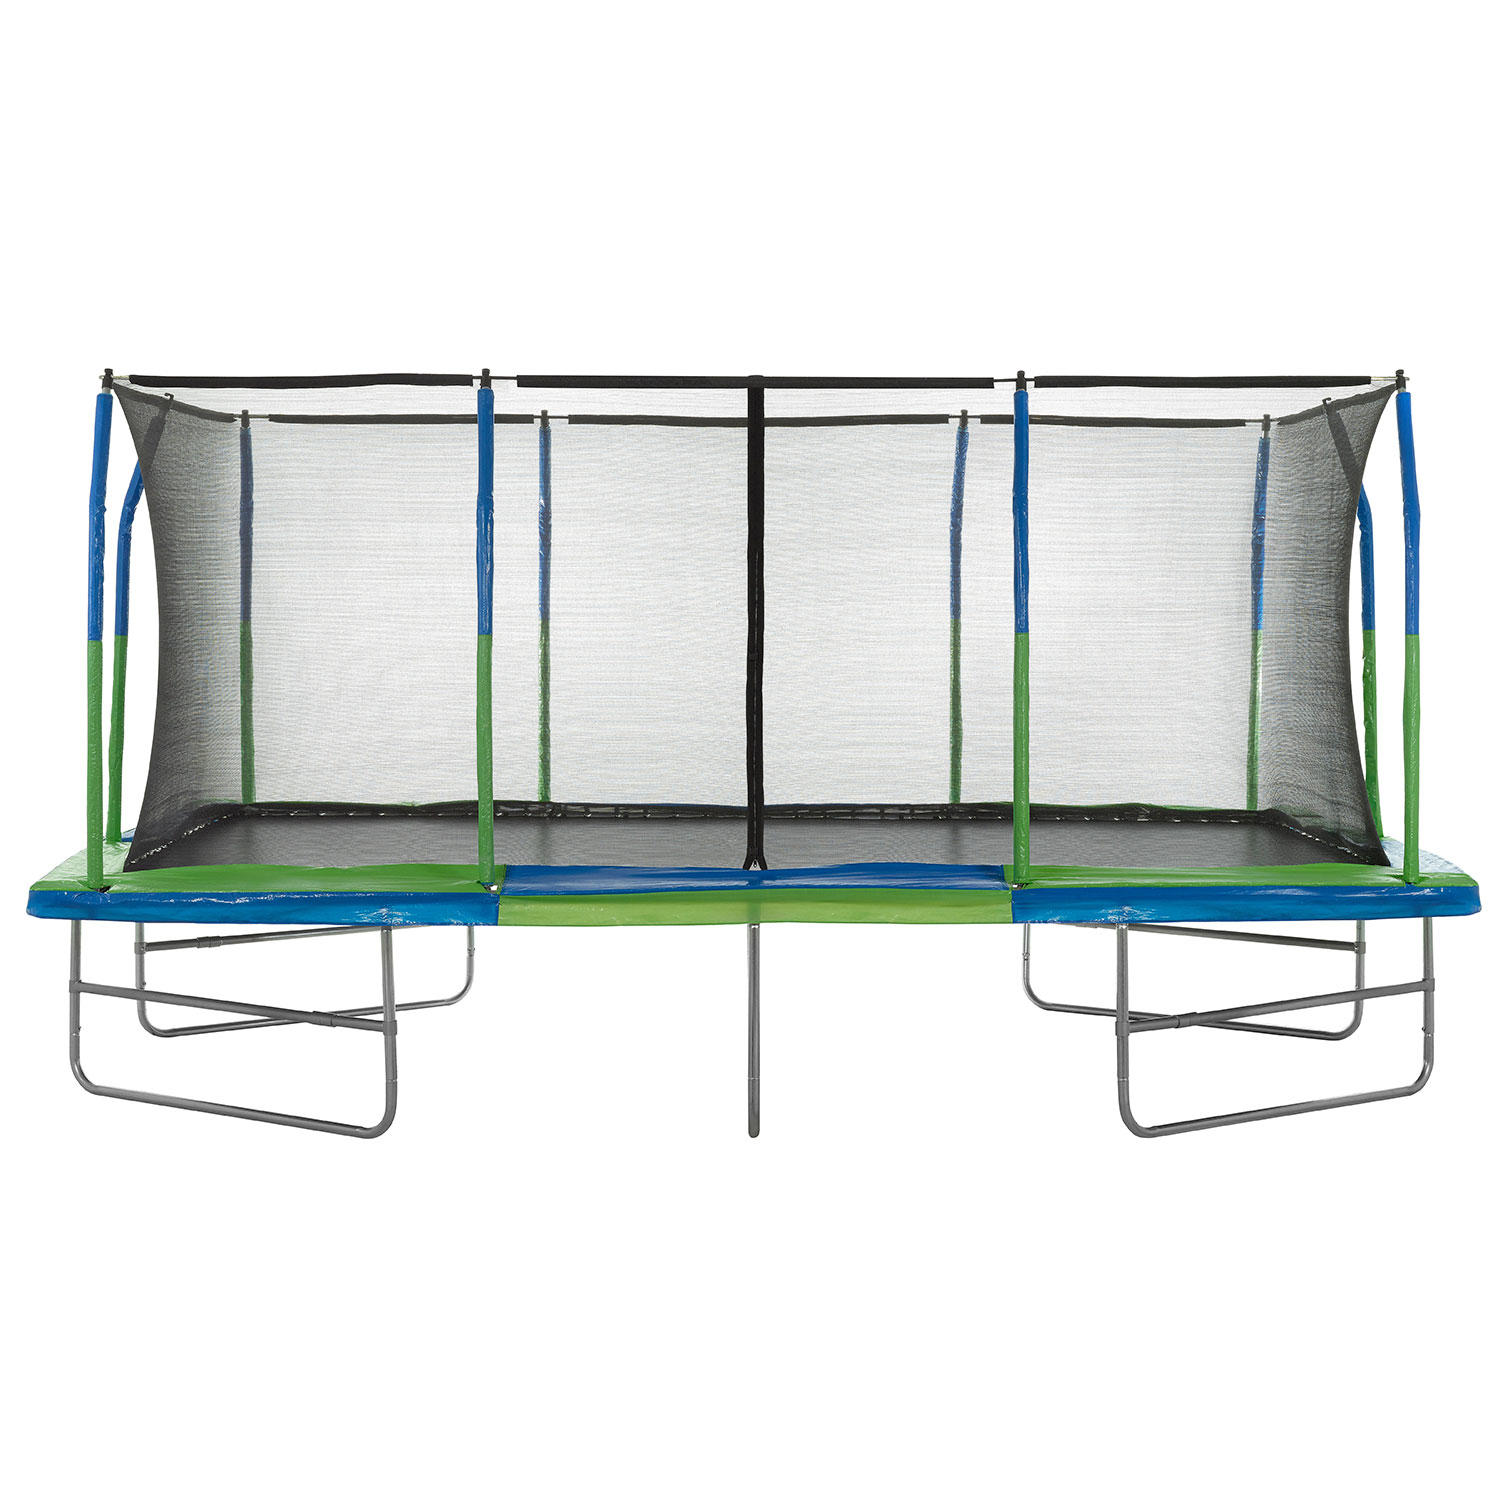 Upper Bounce Mega Trampoline with Fiber Flex Enclosure System (10' X 17')